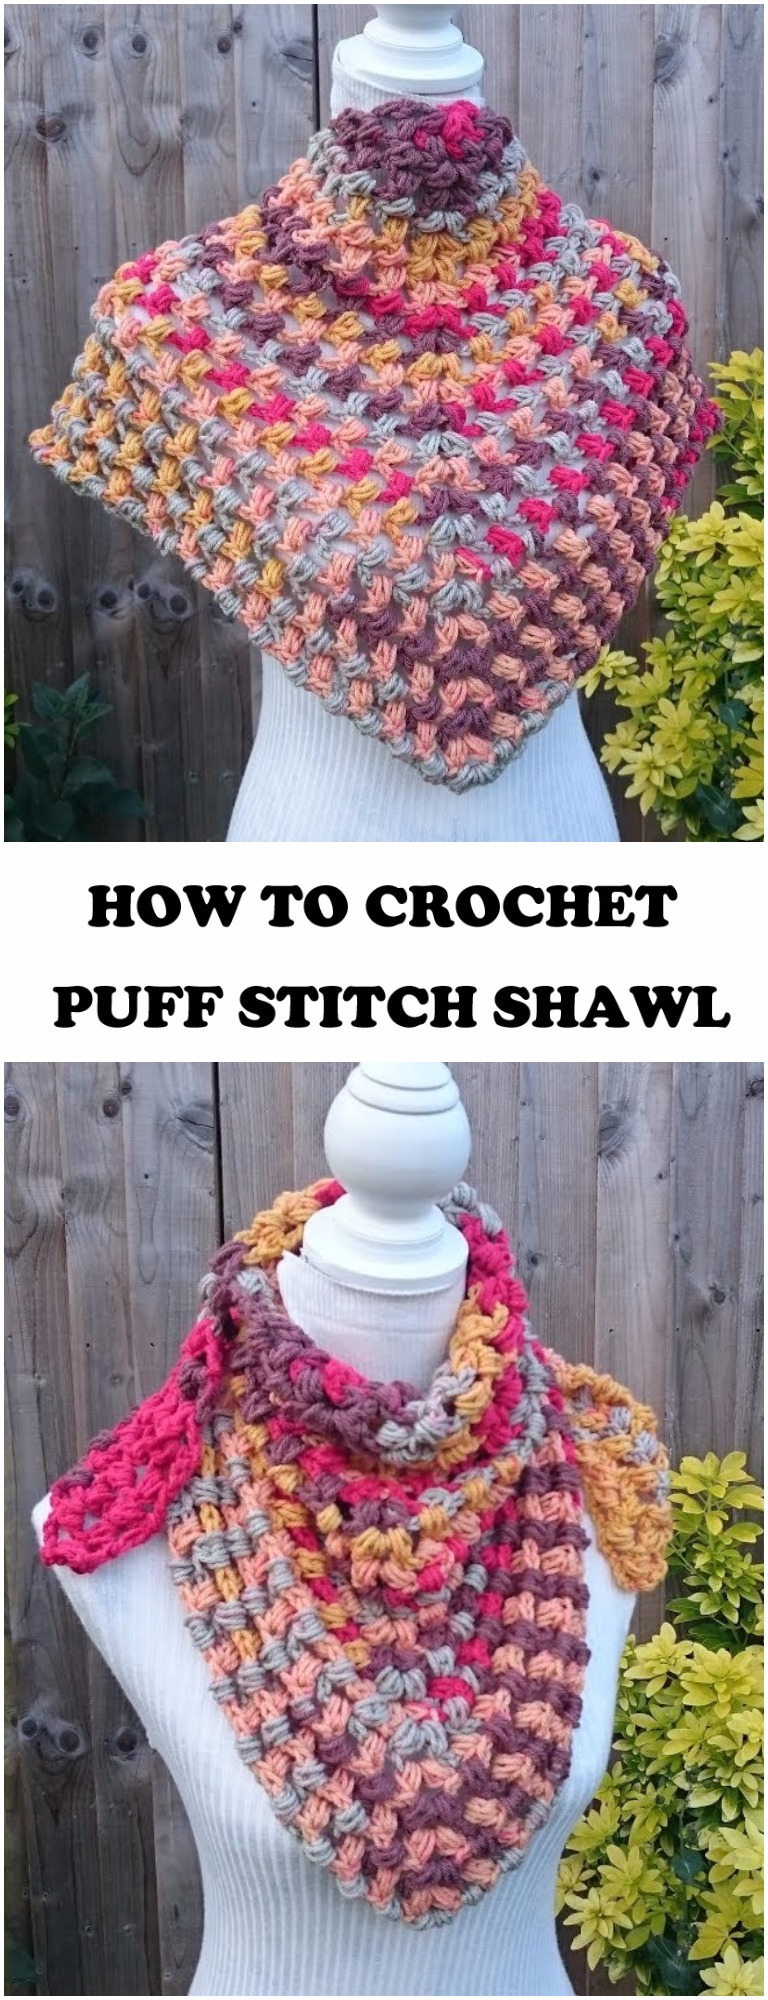 How to Crochet Puff Stitch Shawl